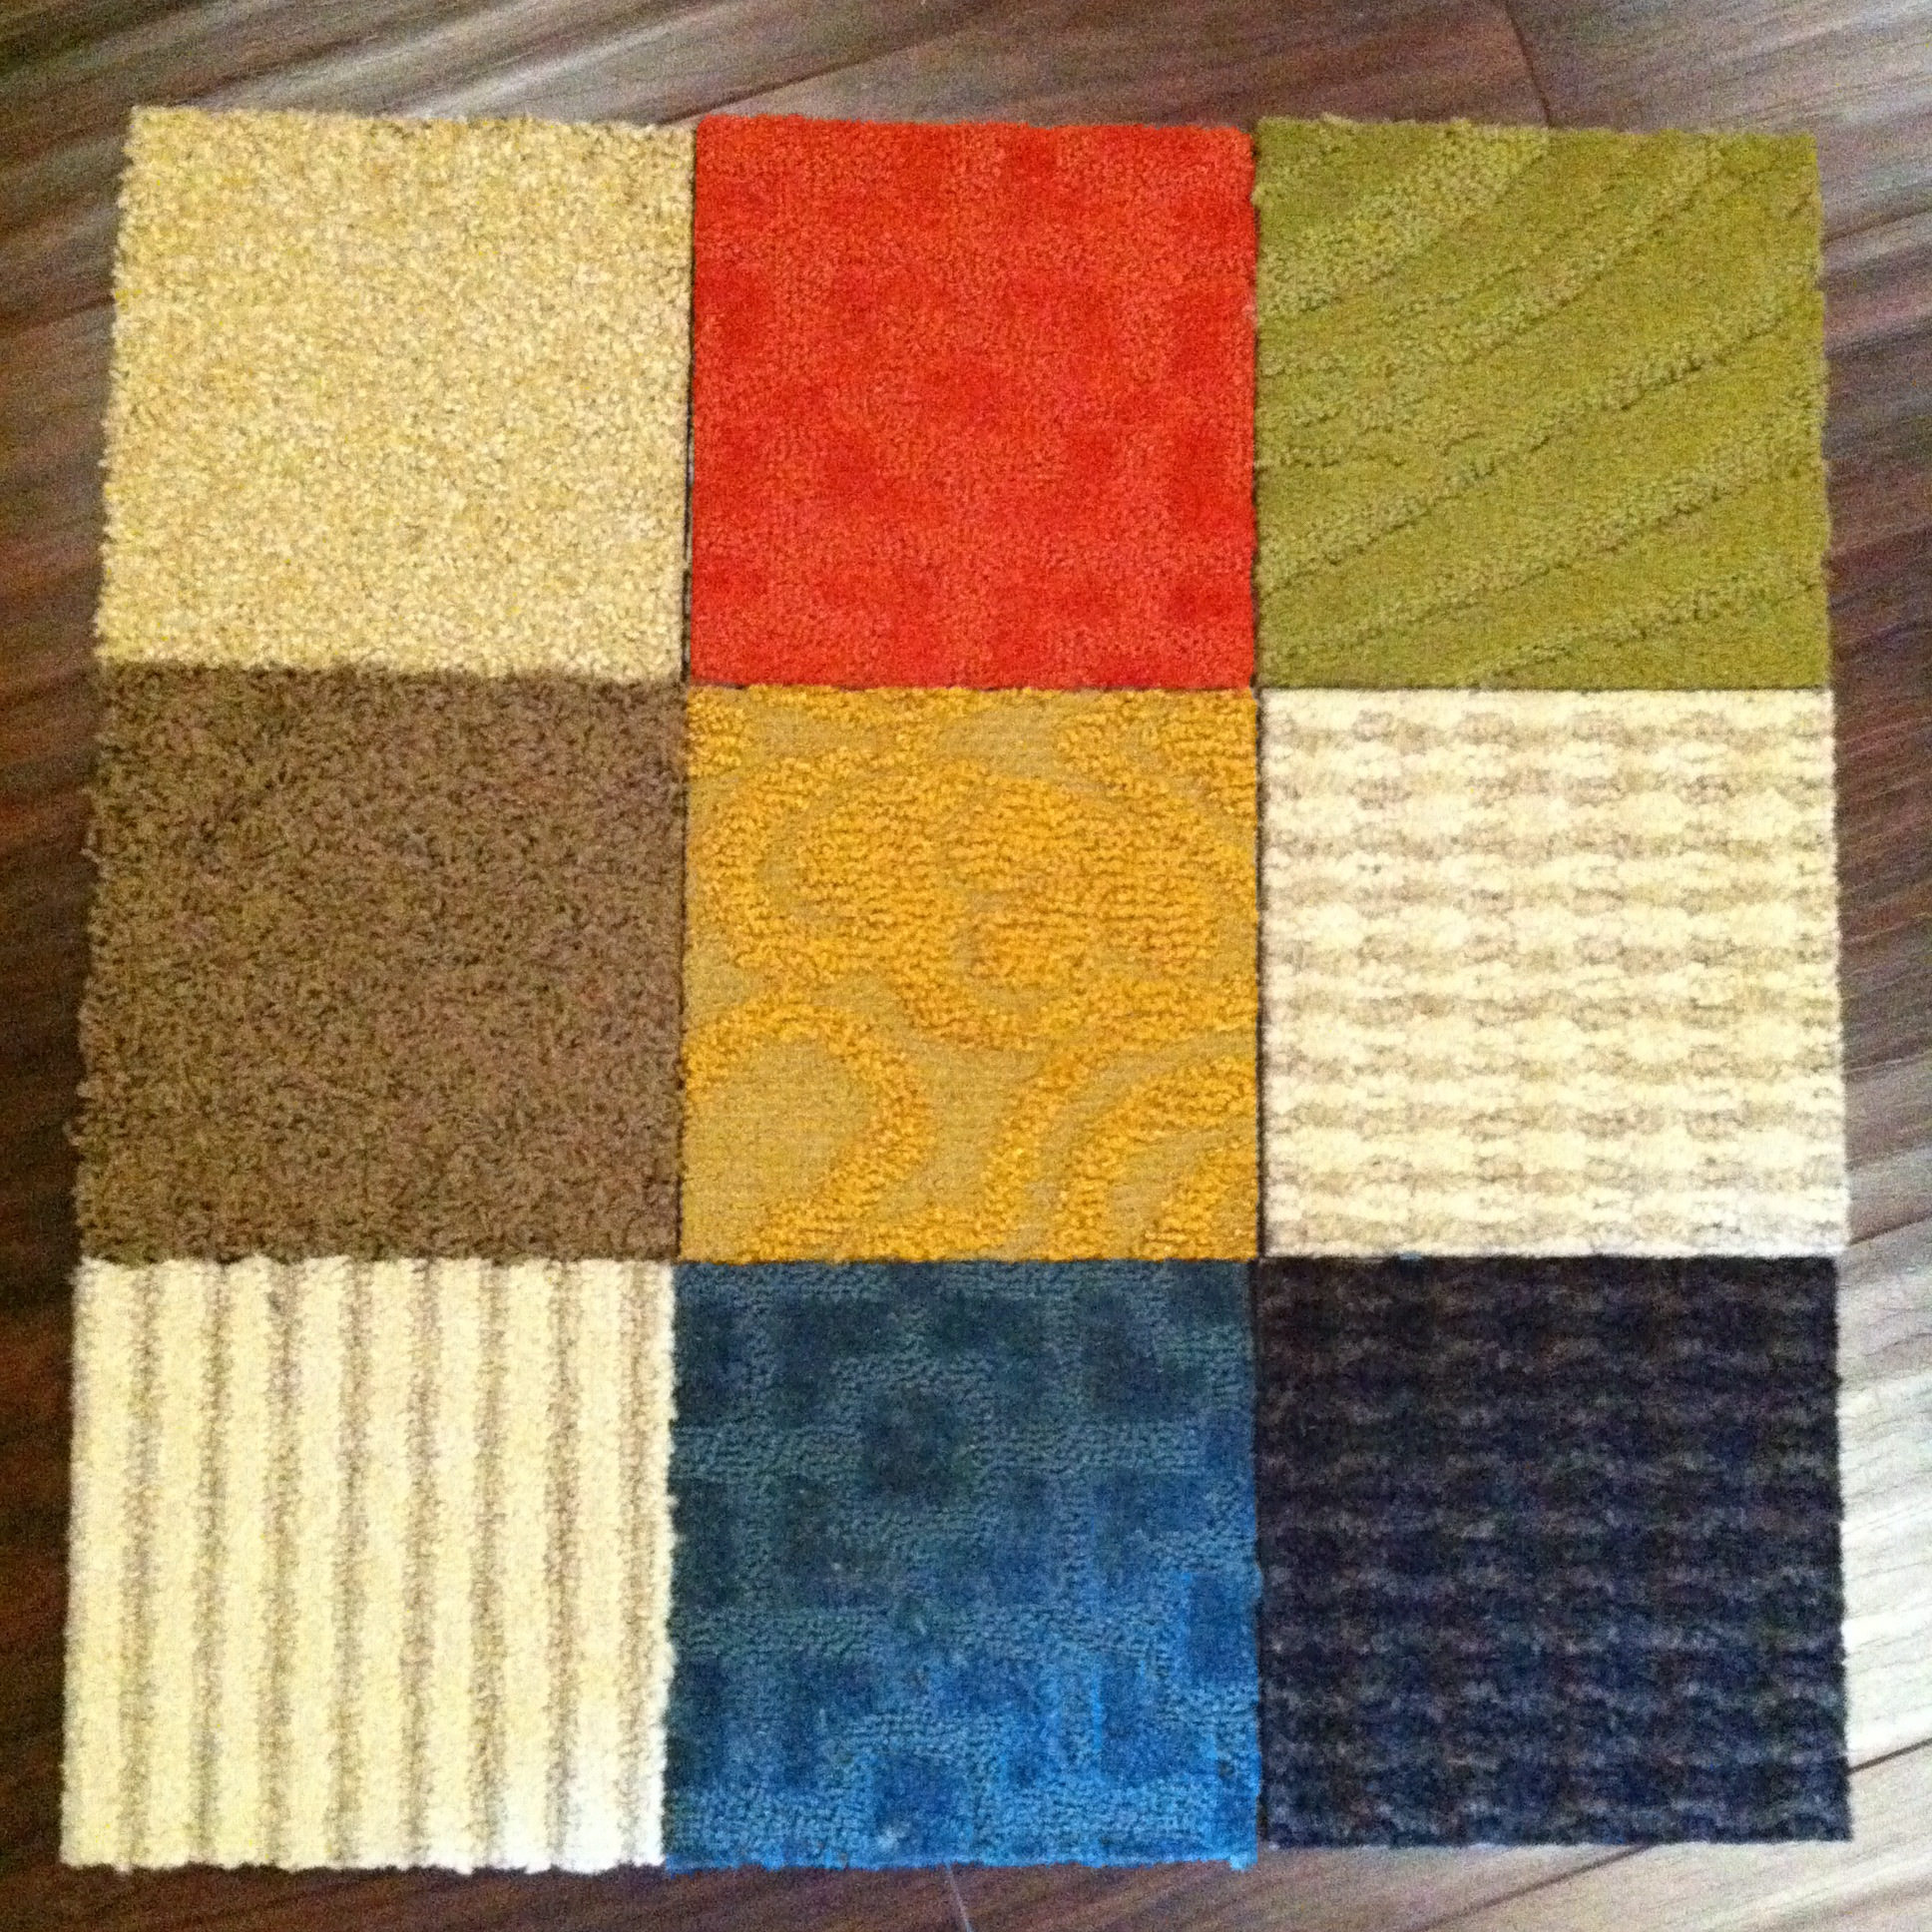 Deciding on flor carpet tiles storypiece there dailygadgetfo Images